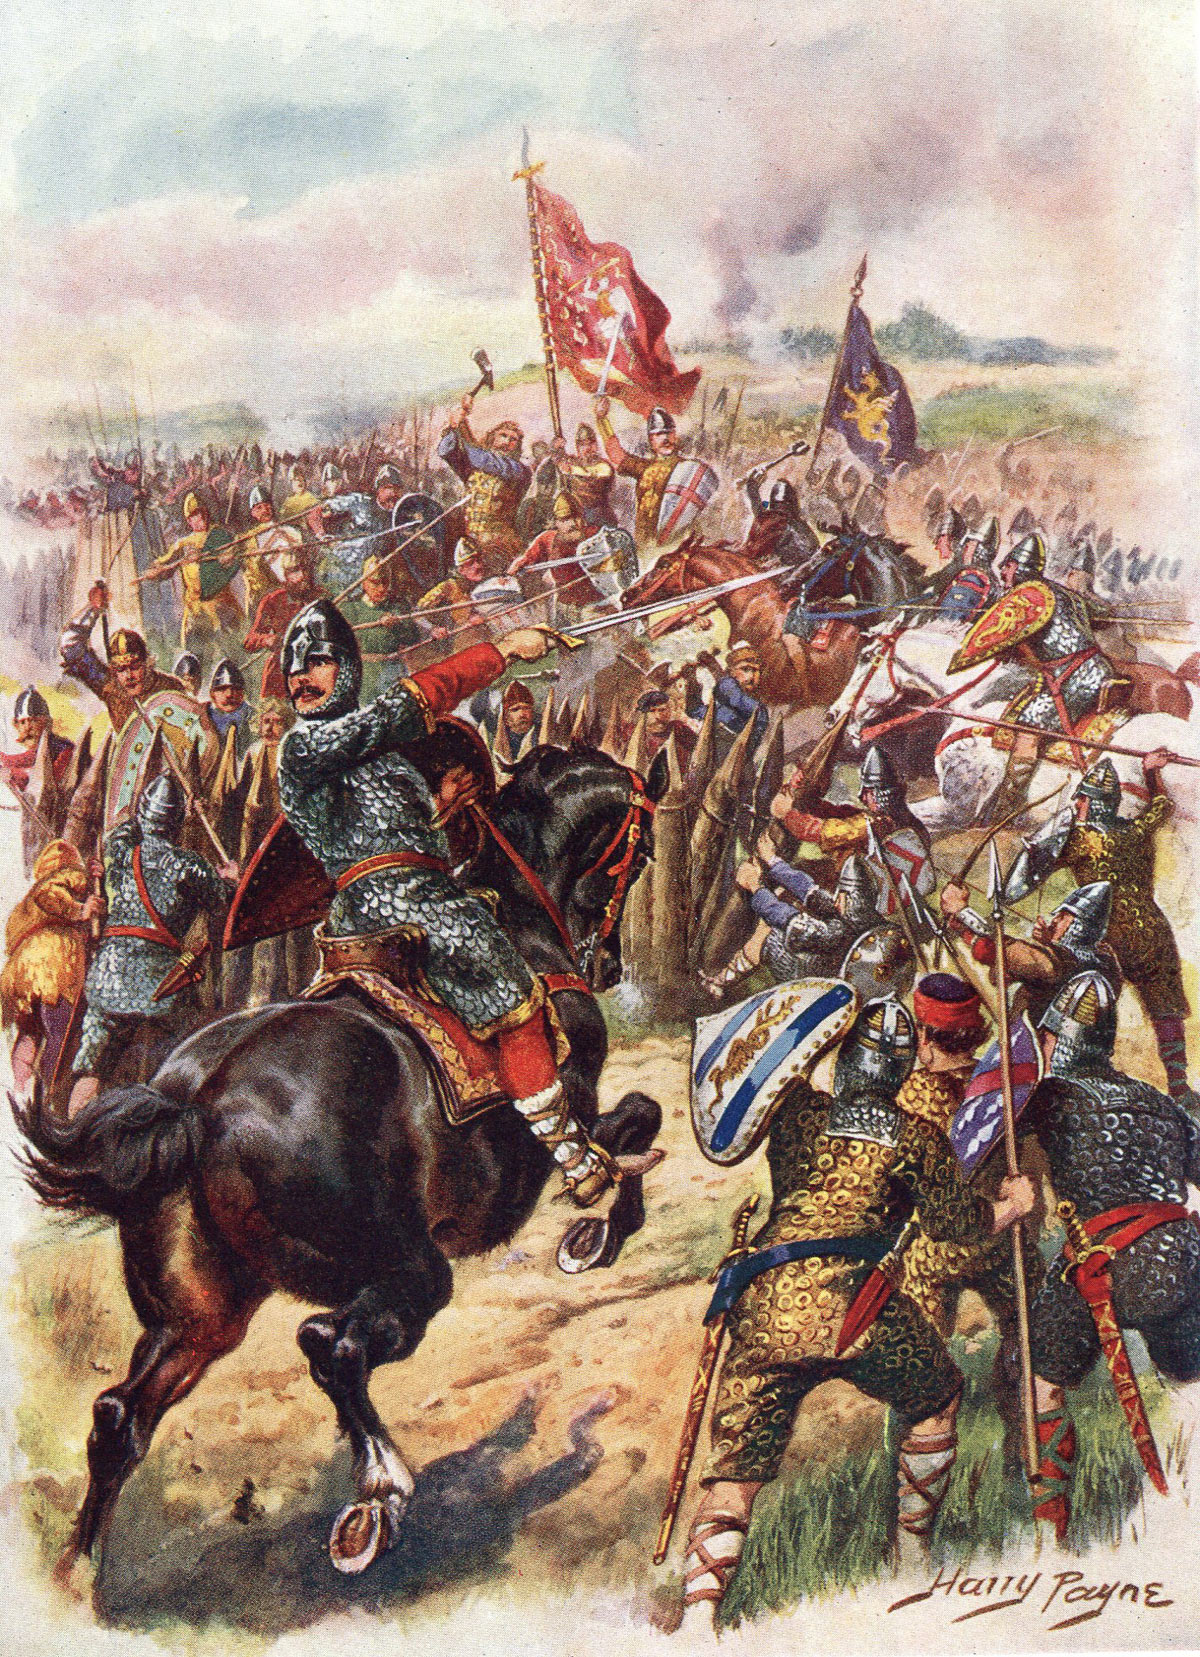 King Harold's last stand at the Battle of Hastings on 14th October 1066: picture by Harry Payne